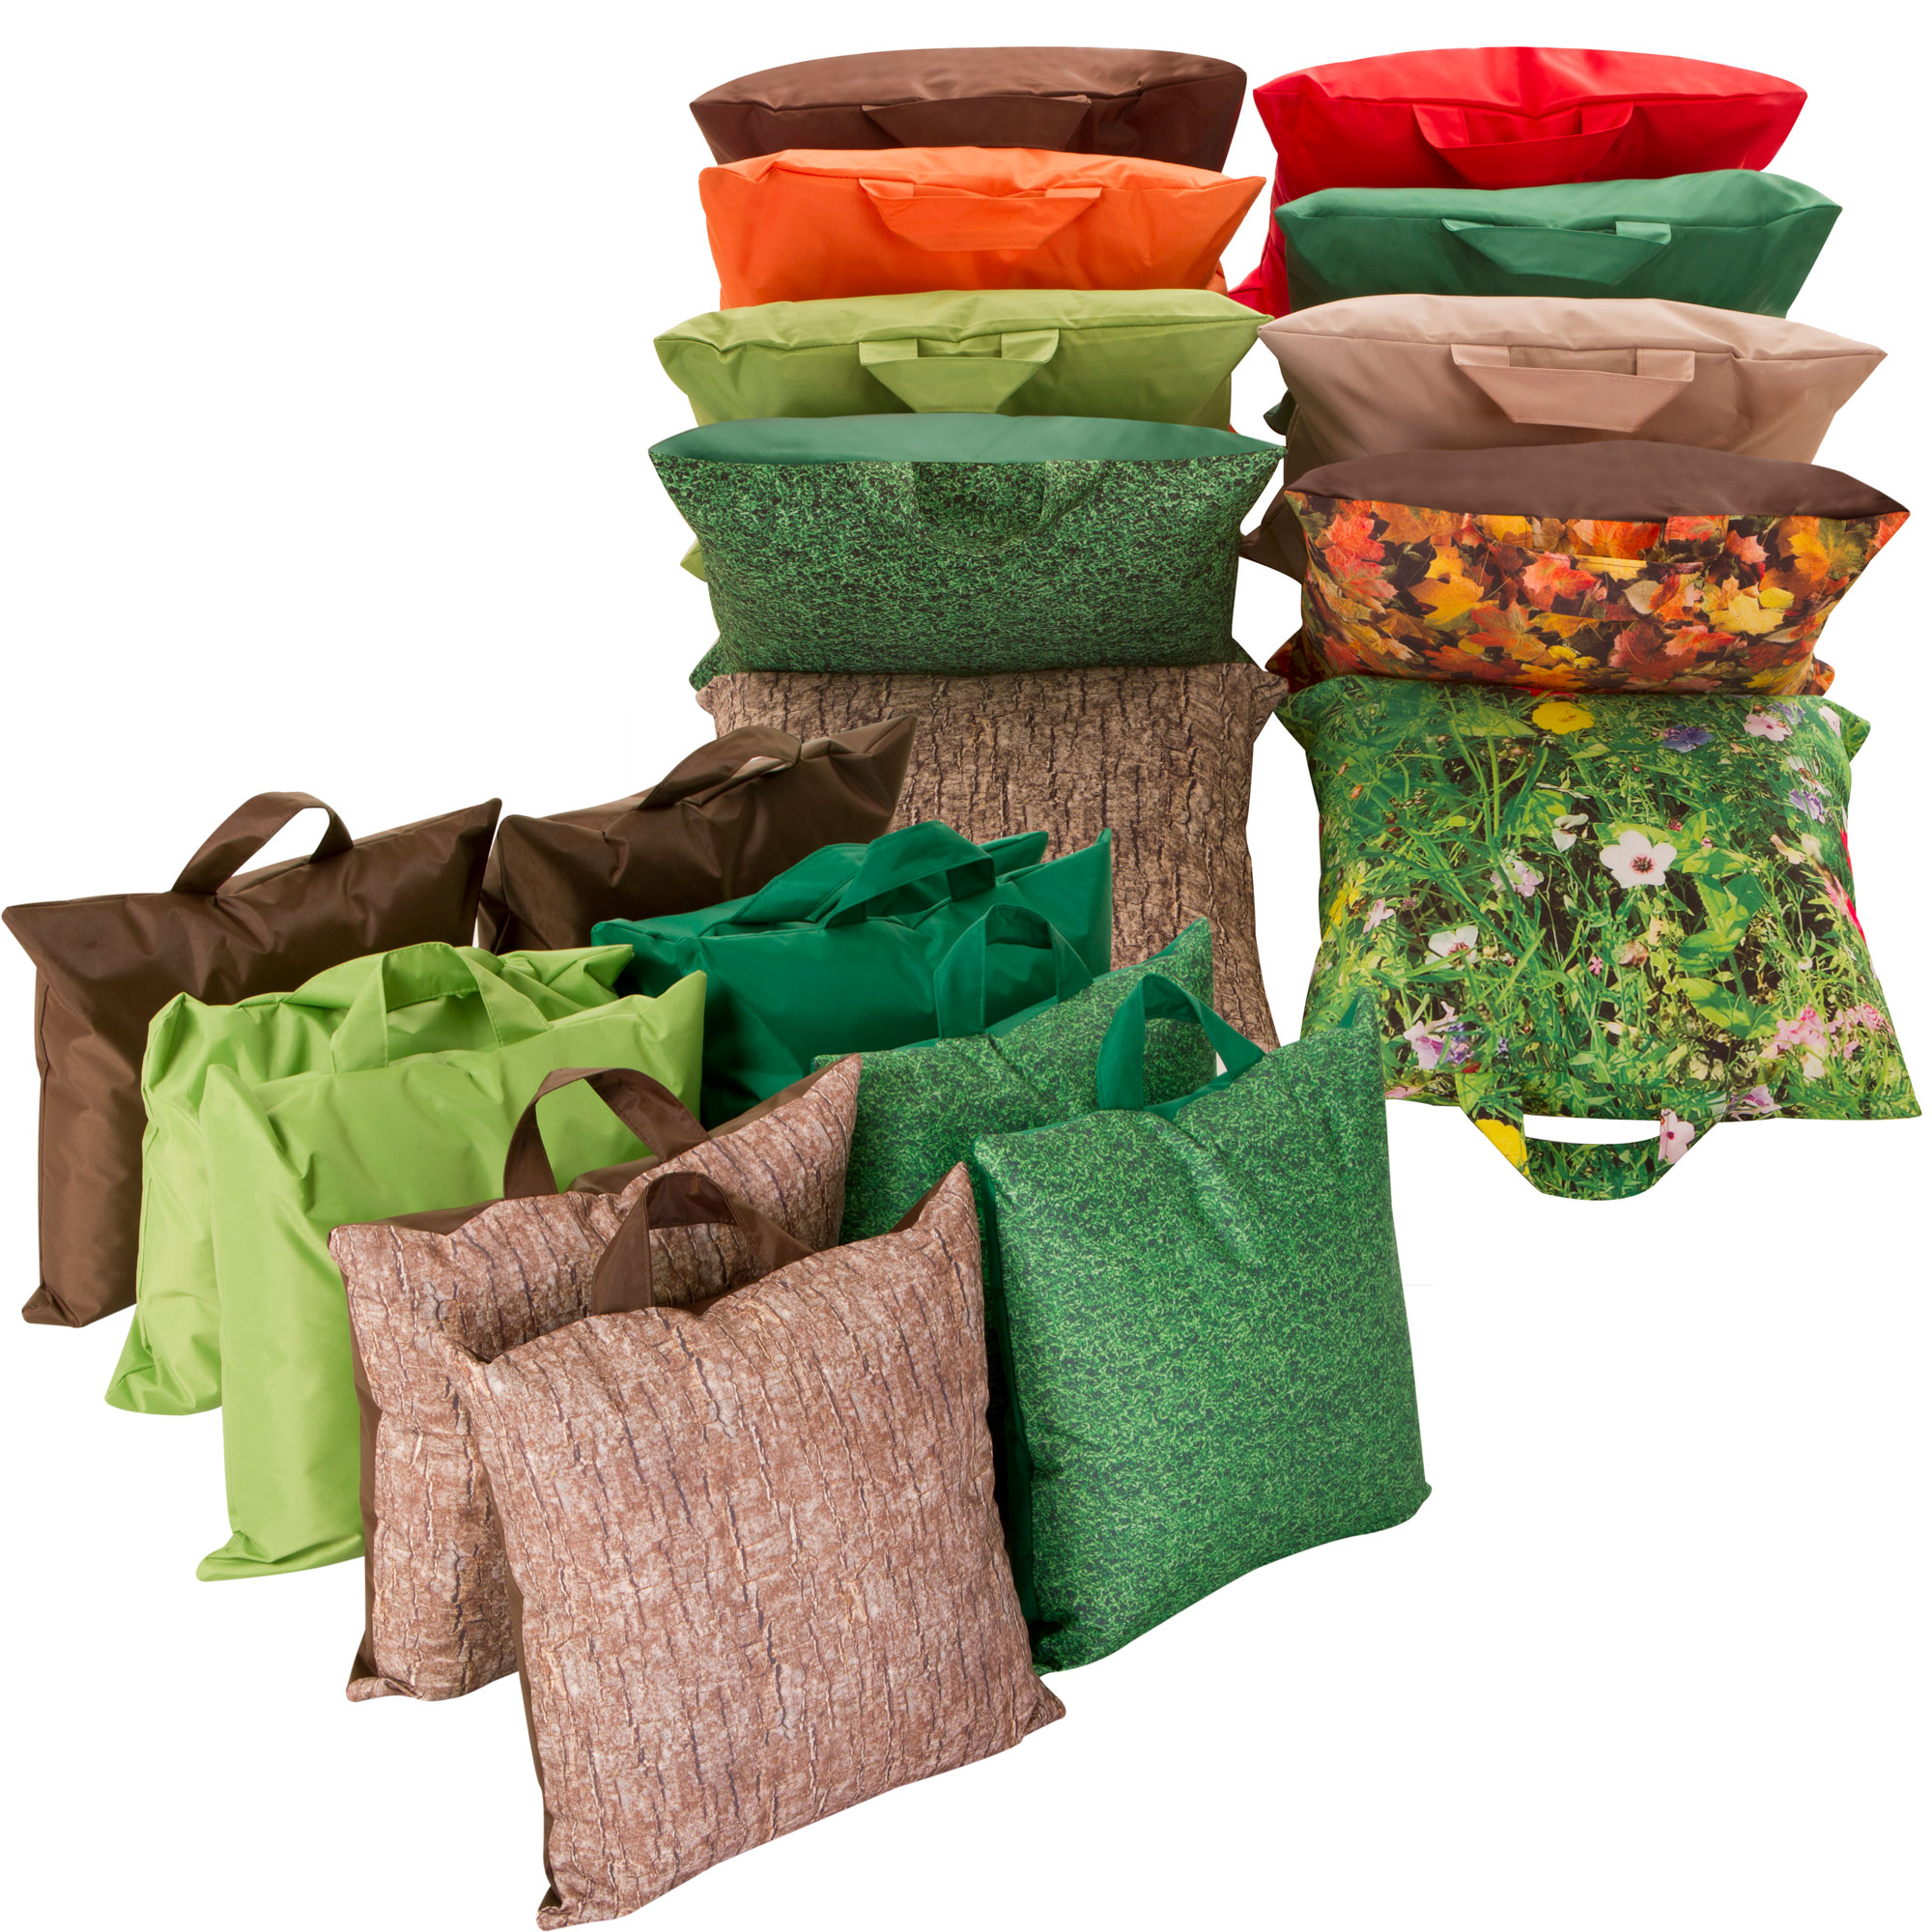 Eden-Seasons-Cushions-10PK-LF-300dpi-2.jpg